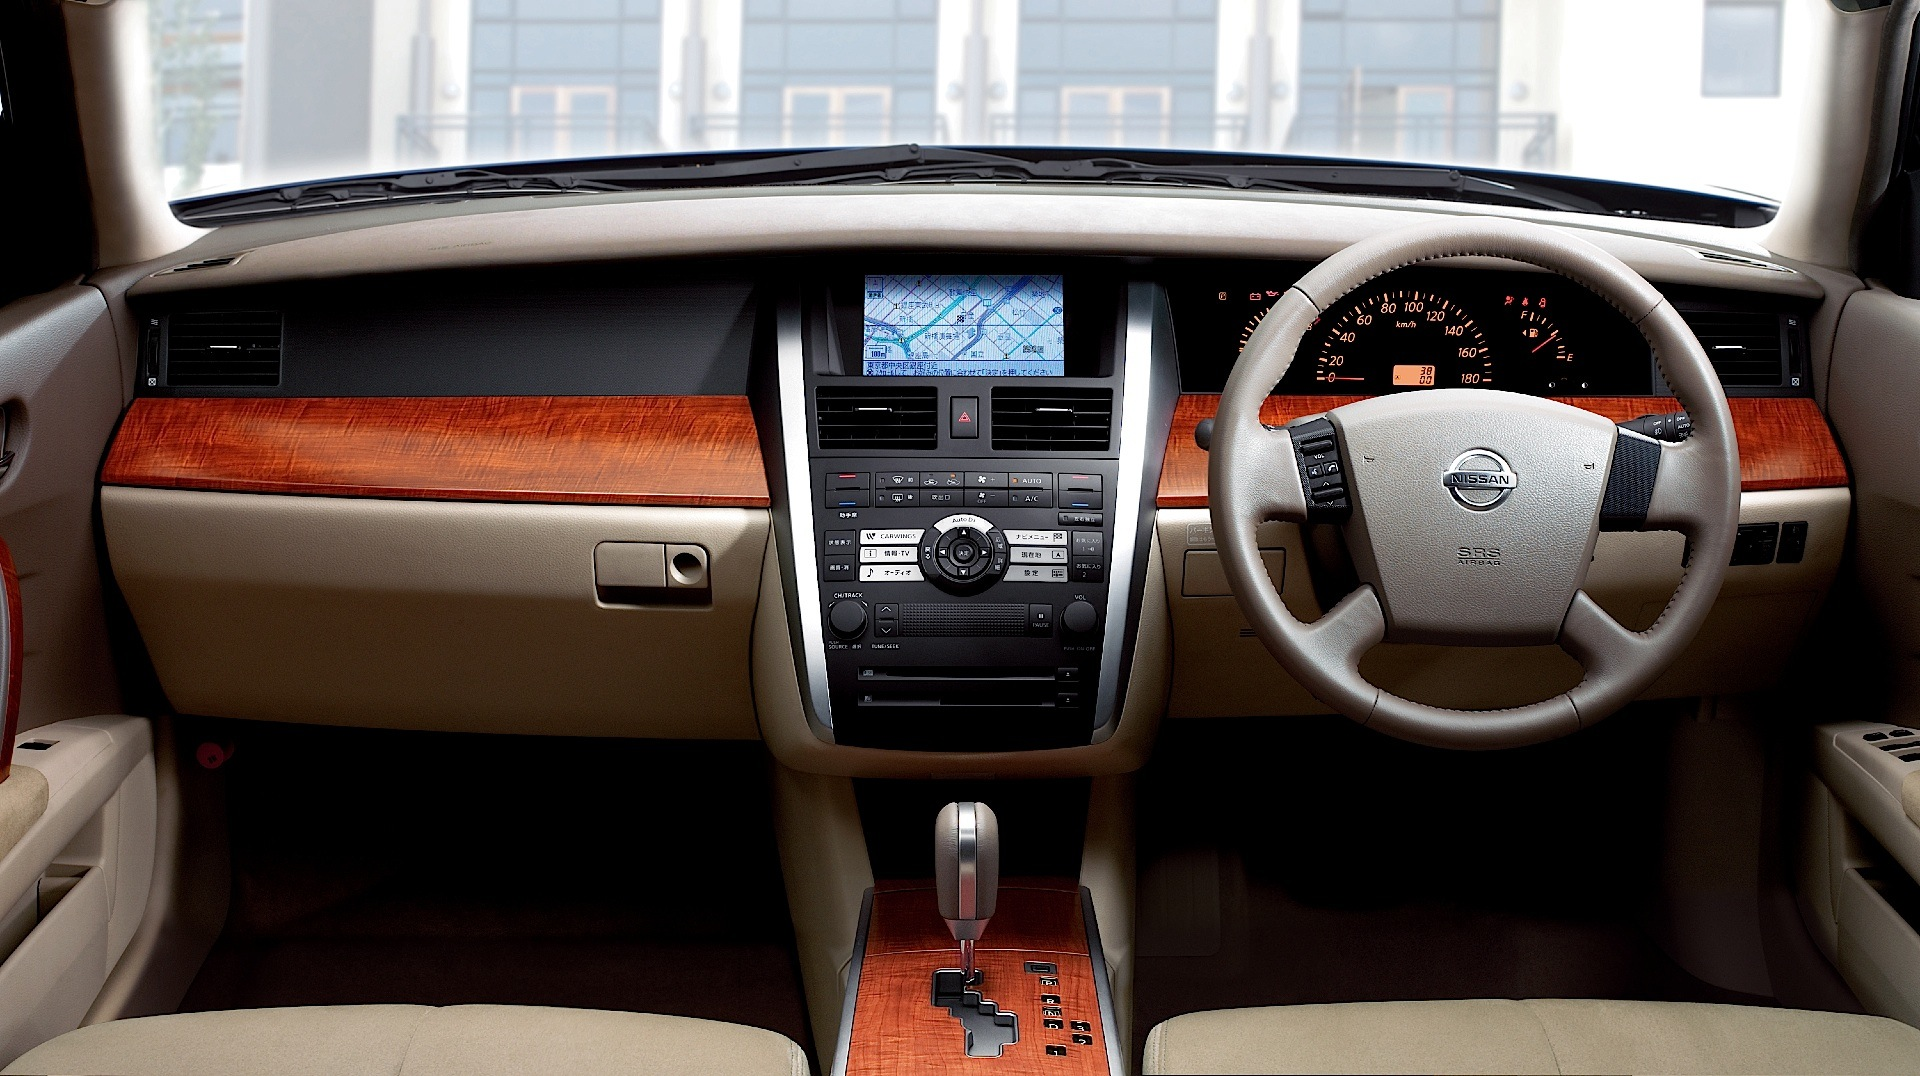 2004 nissan altima interior gallery hd cars wallpaper coloring 2006 nissan altima interior choice image hd cars wallpaper vanachro Image collections